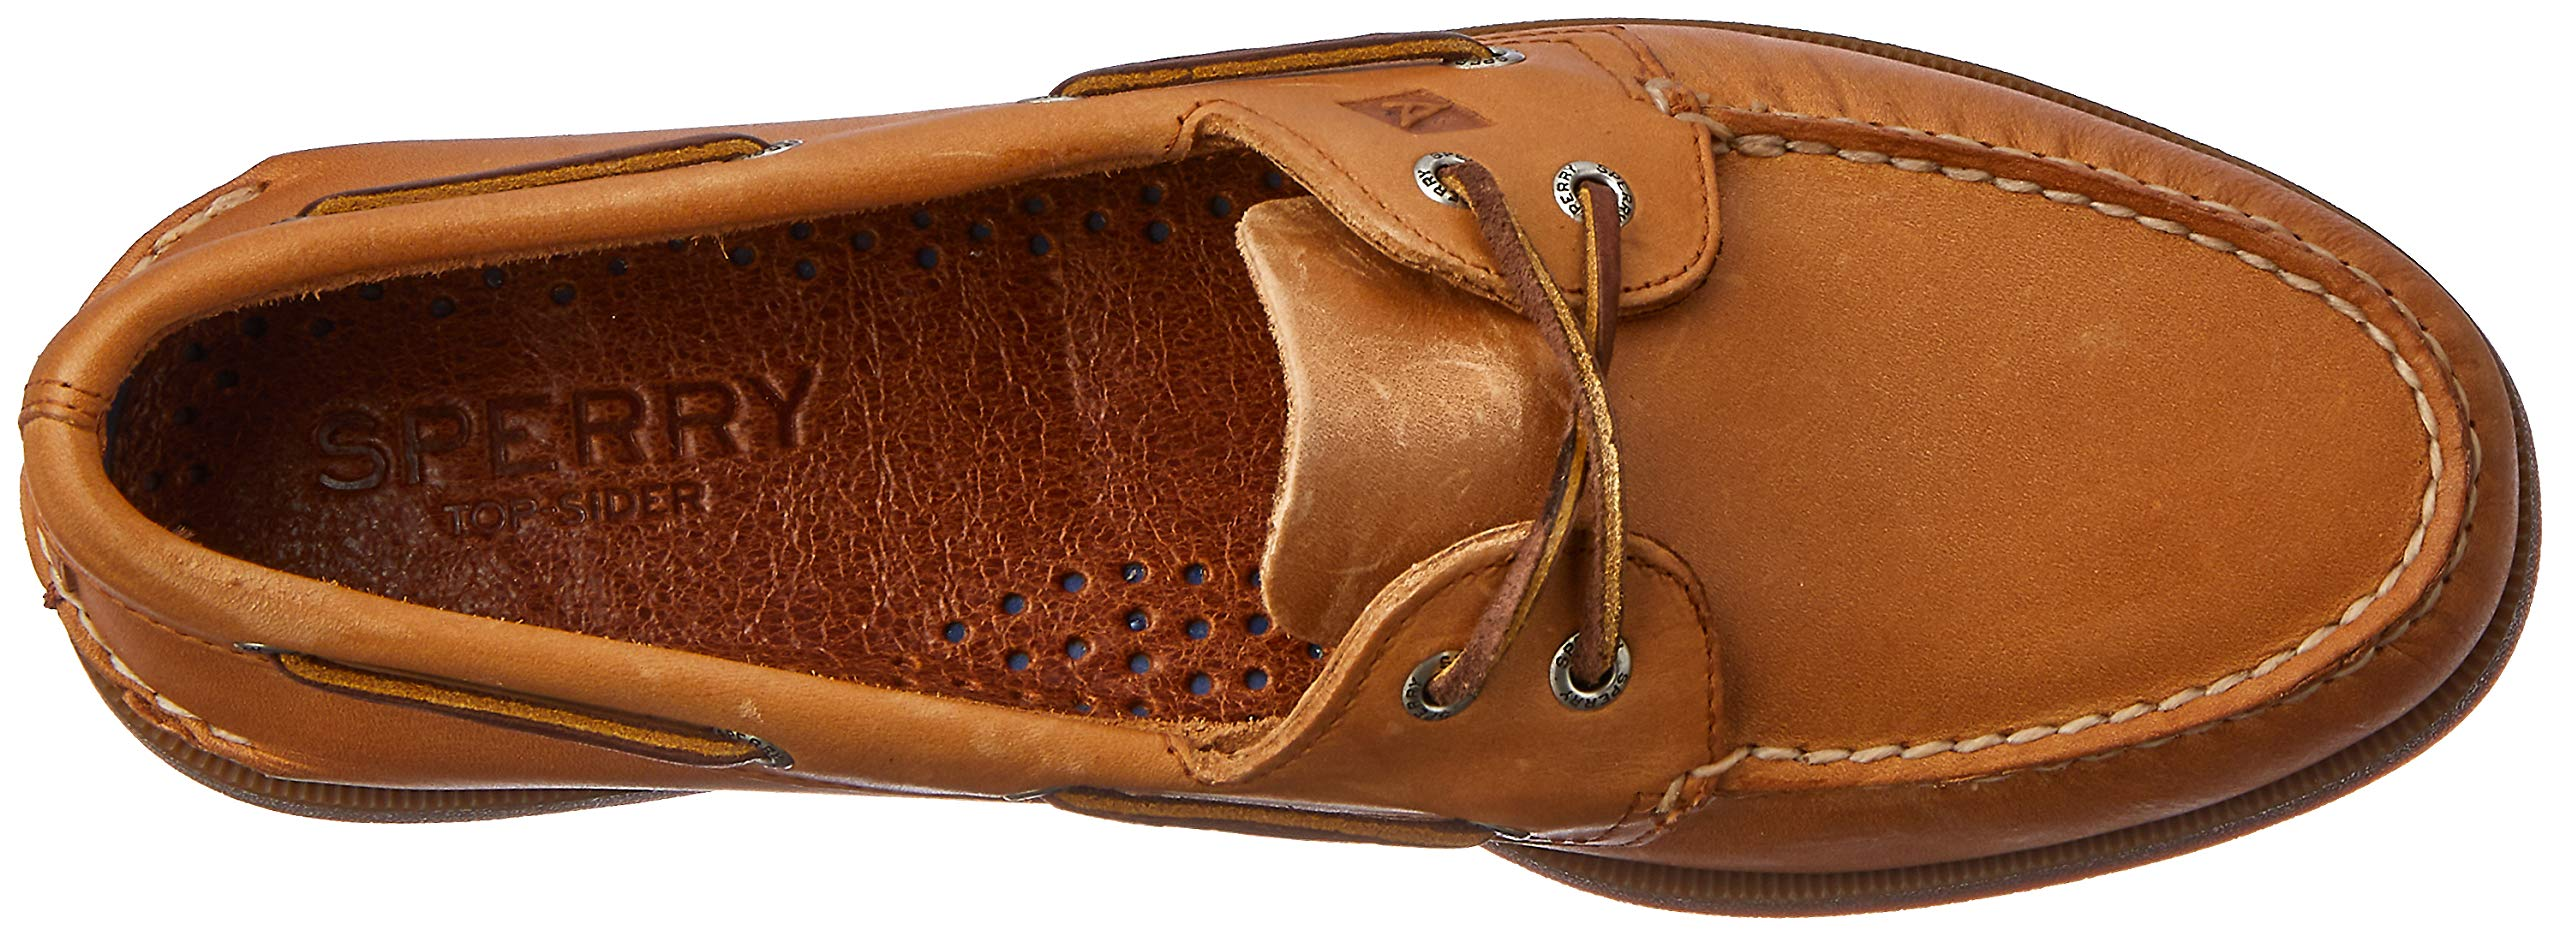 Sperry Top-Sider Authentic Original Leather Boat Shoe Men 13 Sahara Leather by SPERRY (Image #8)